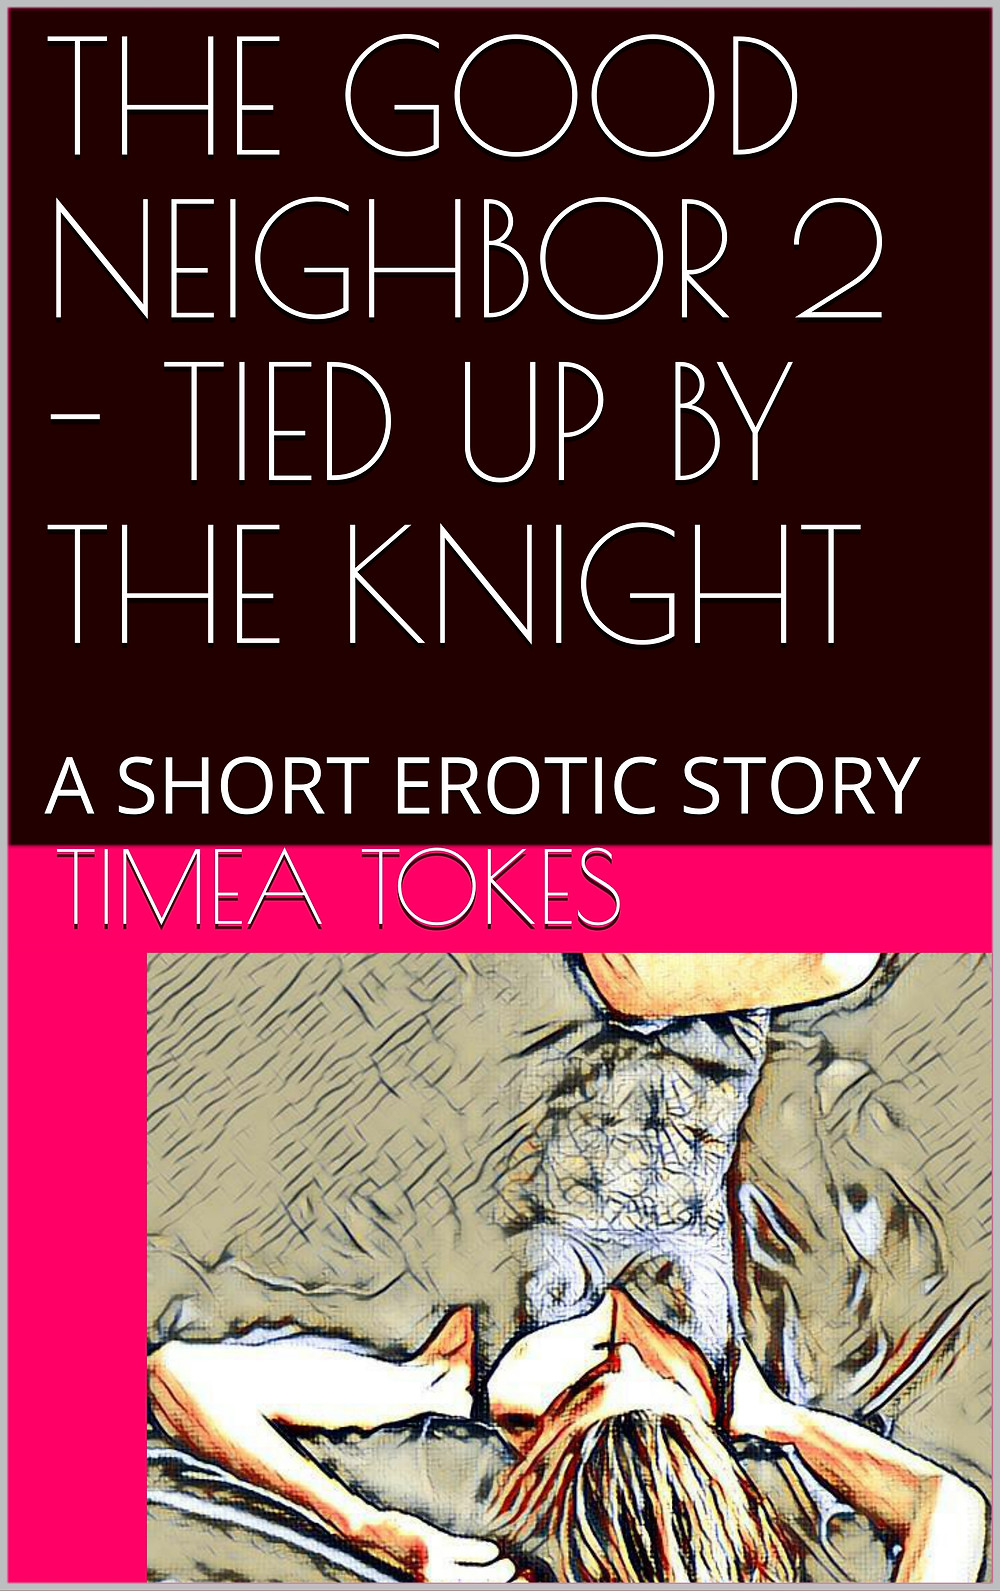 The Good Neighbor 2 - Tied up by the Knight by Timea Tokes